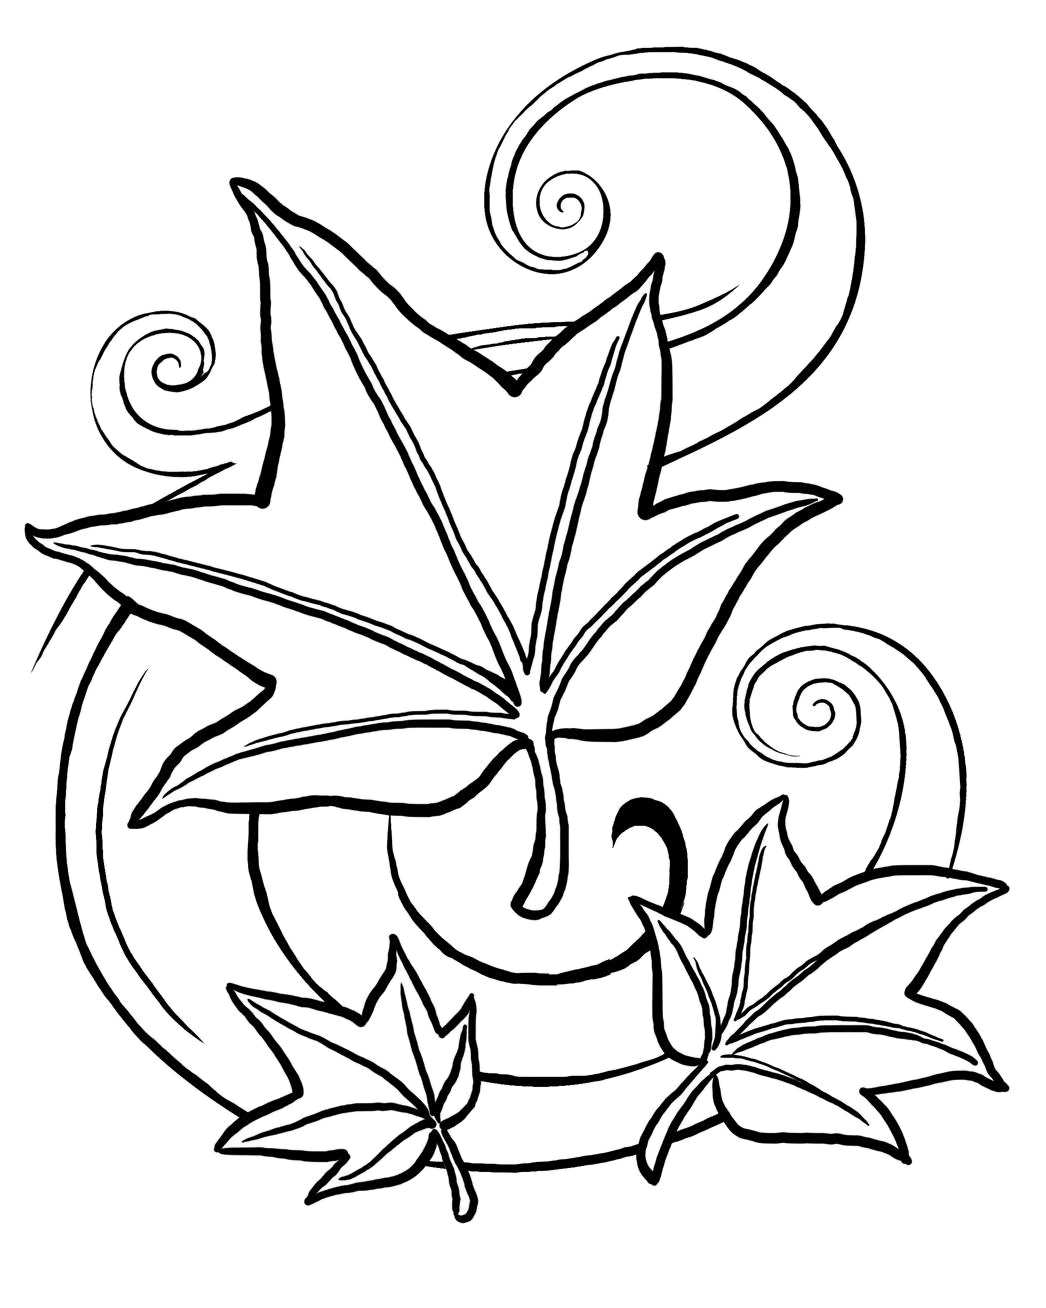 coloring pages leaves fall leaf coloring pages for preschool at getcoloringscom fall leaves coloring pages